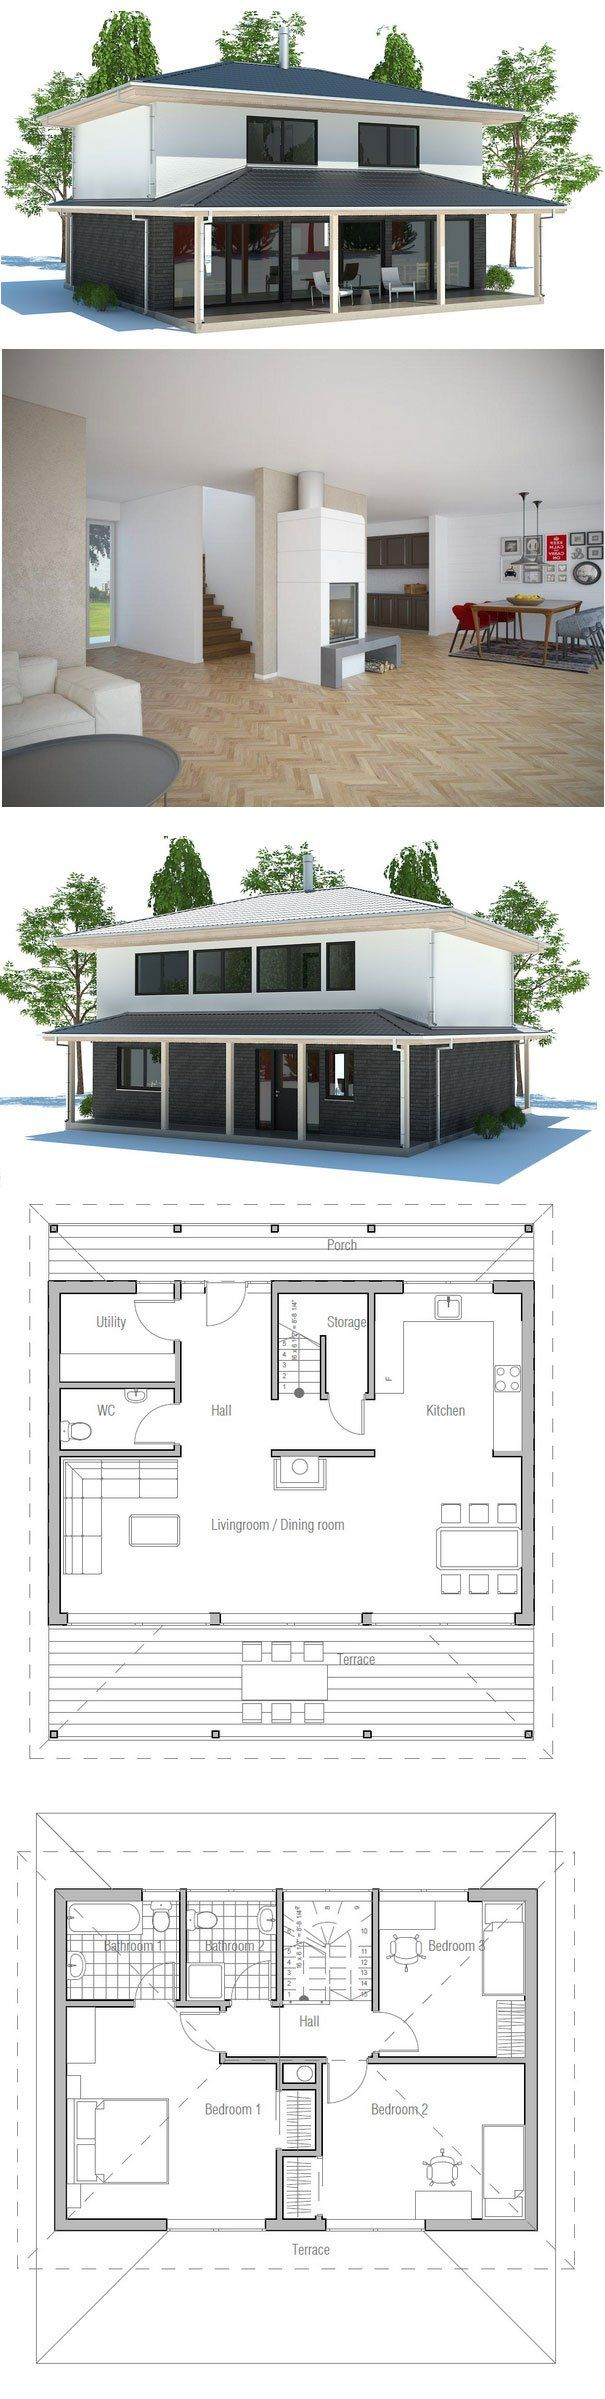 House Plan Ch187 Container House Plans House Plans Building A Container Home